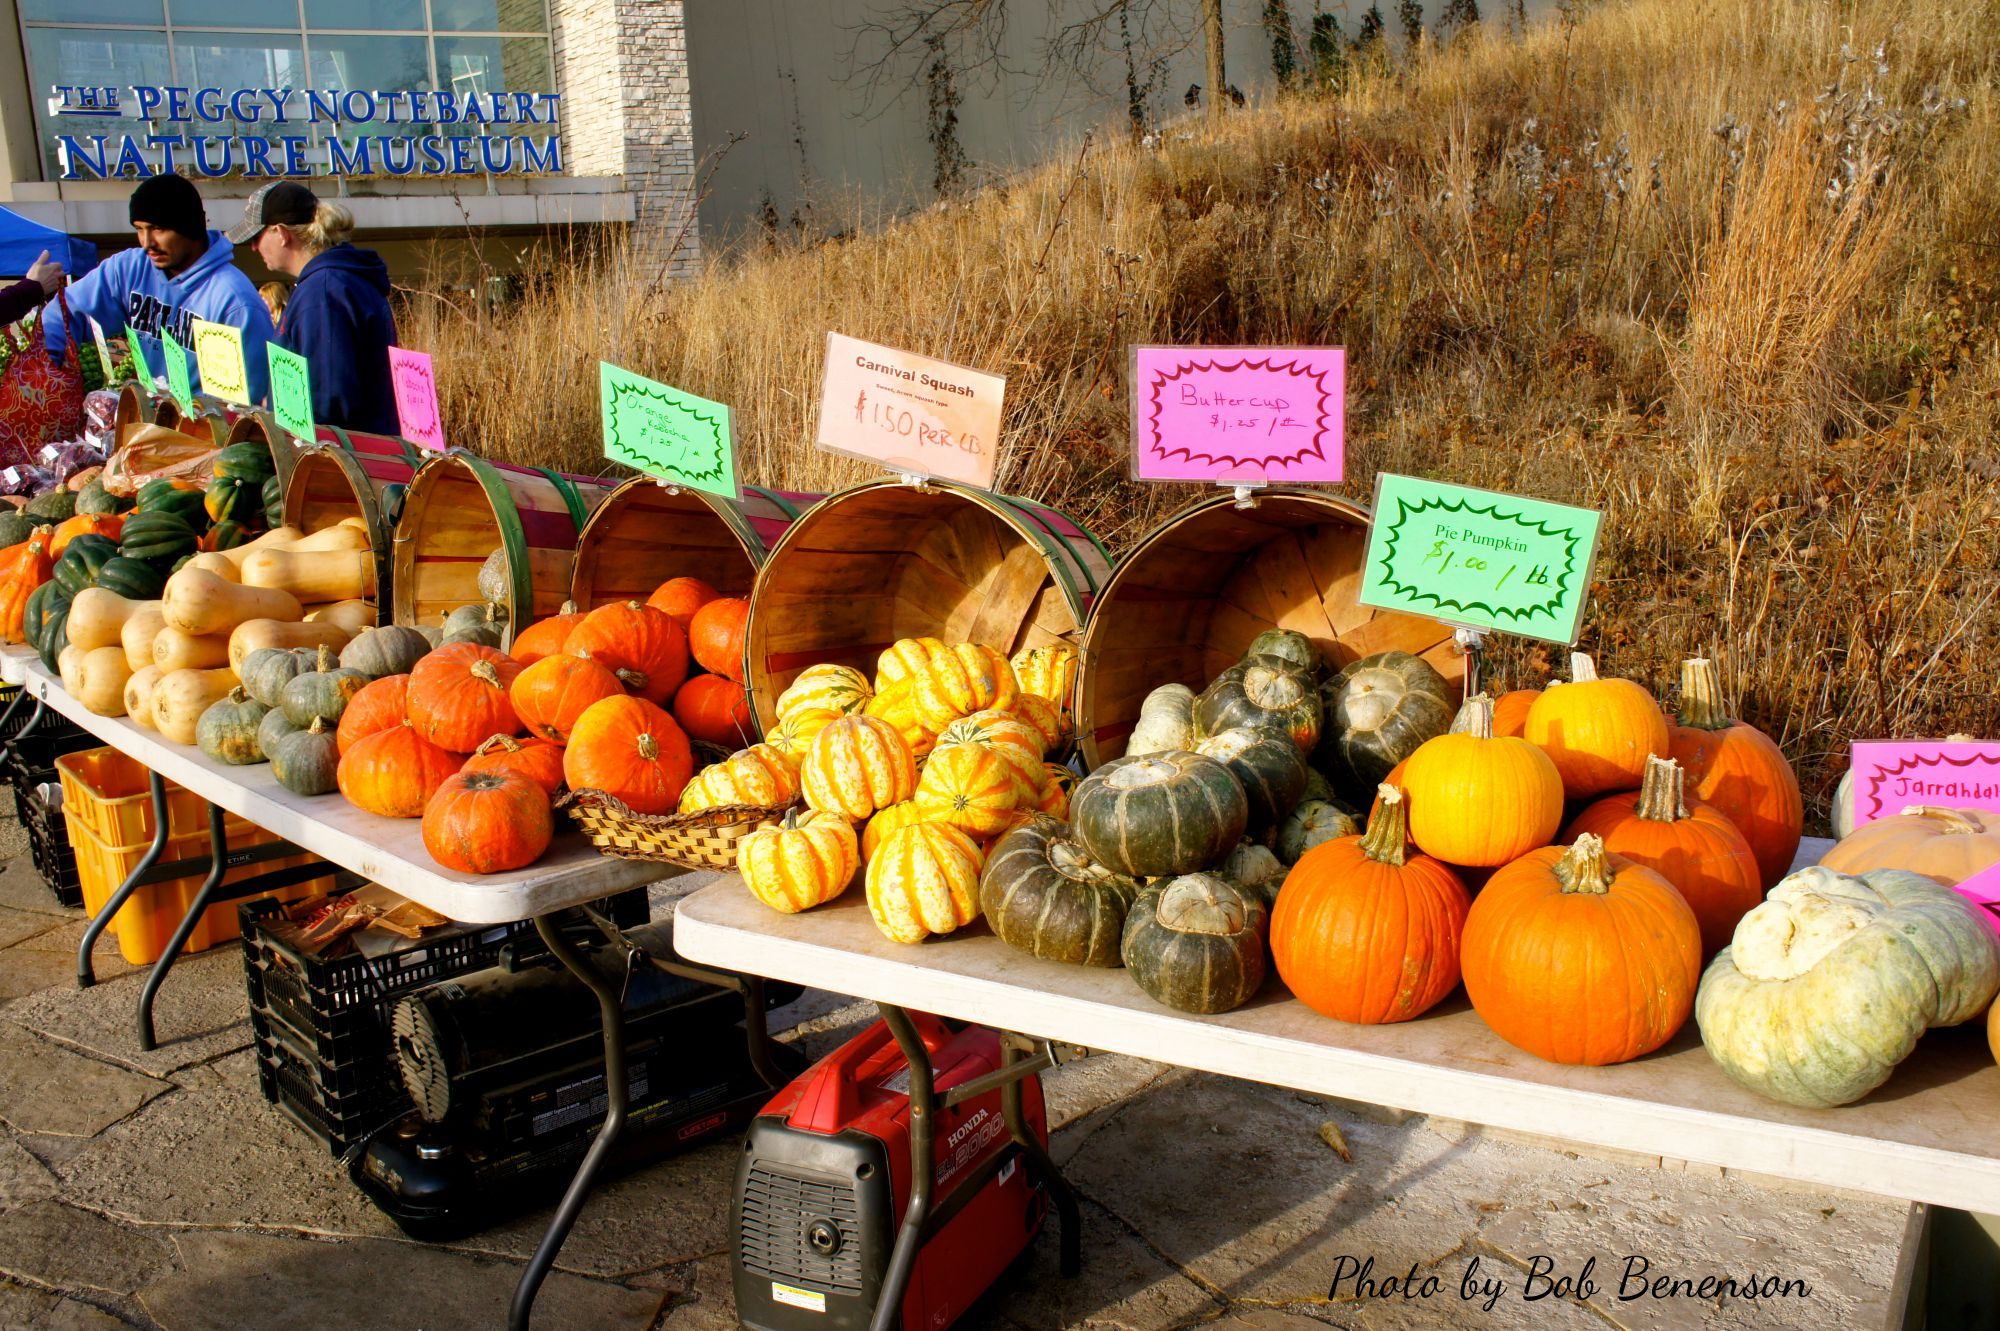 Pumpkins, squash and gourds as Chicago's Green City Market moves into its winter season